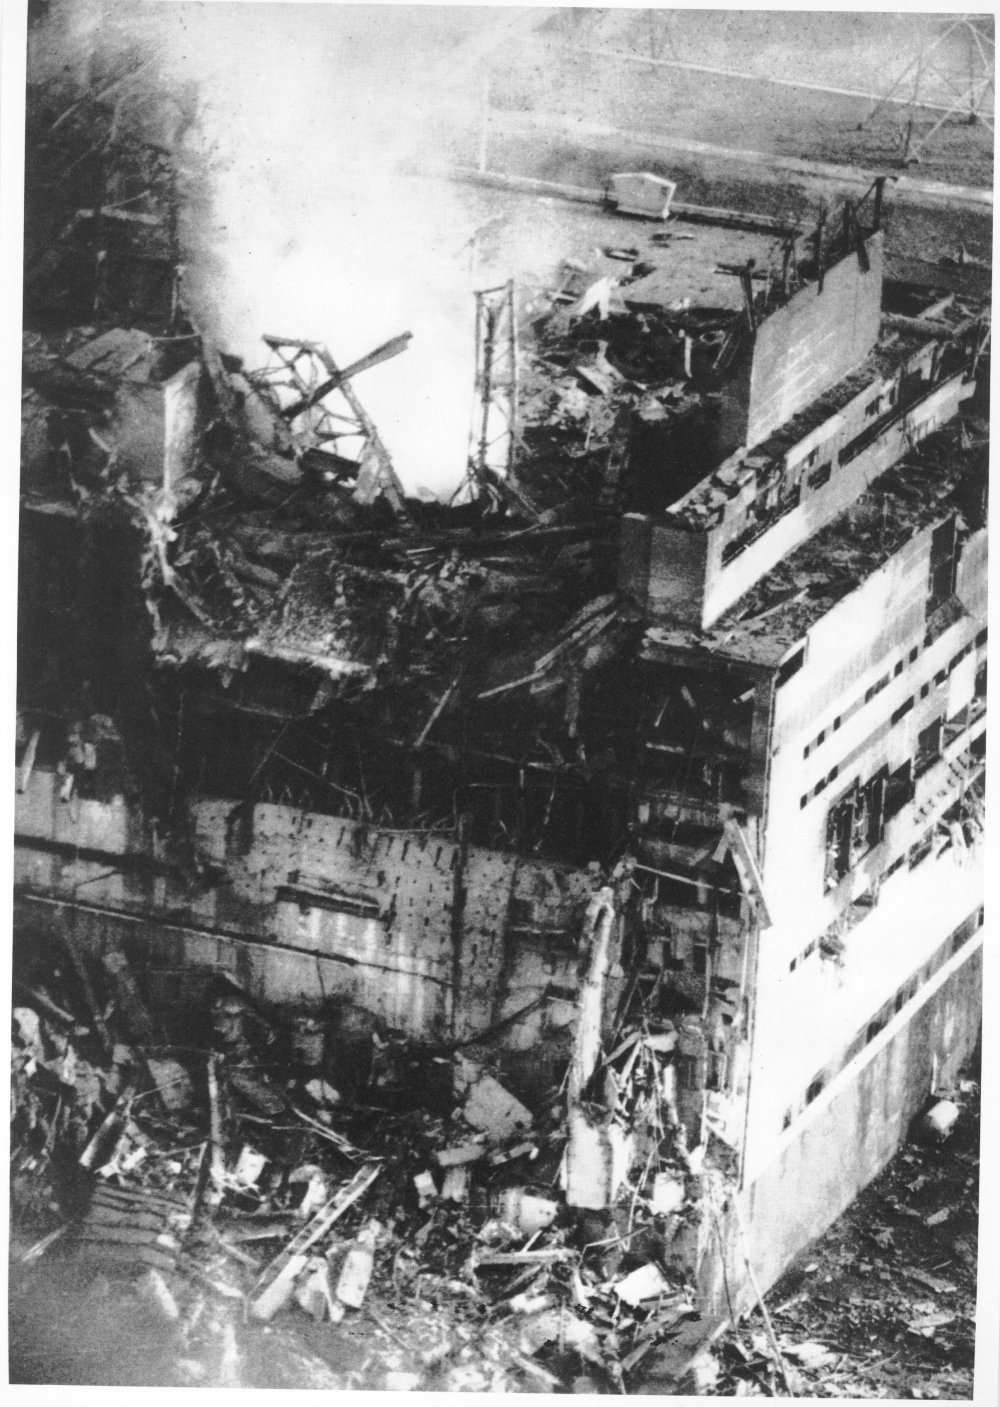 The first photograph of Unit Four after the accident, shot from a helicopter by Chernobyl plant photographer Anatoly Rasskazov, at approximately 3.00pm on April 26 1986 (Anatoly Rasskazov/Ukrainian National Chernobyl Museum)